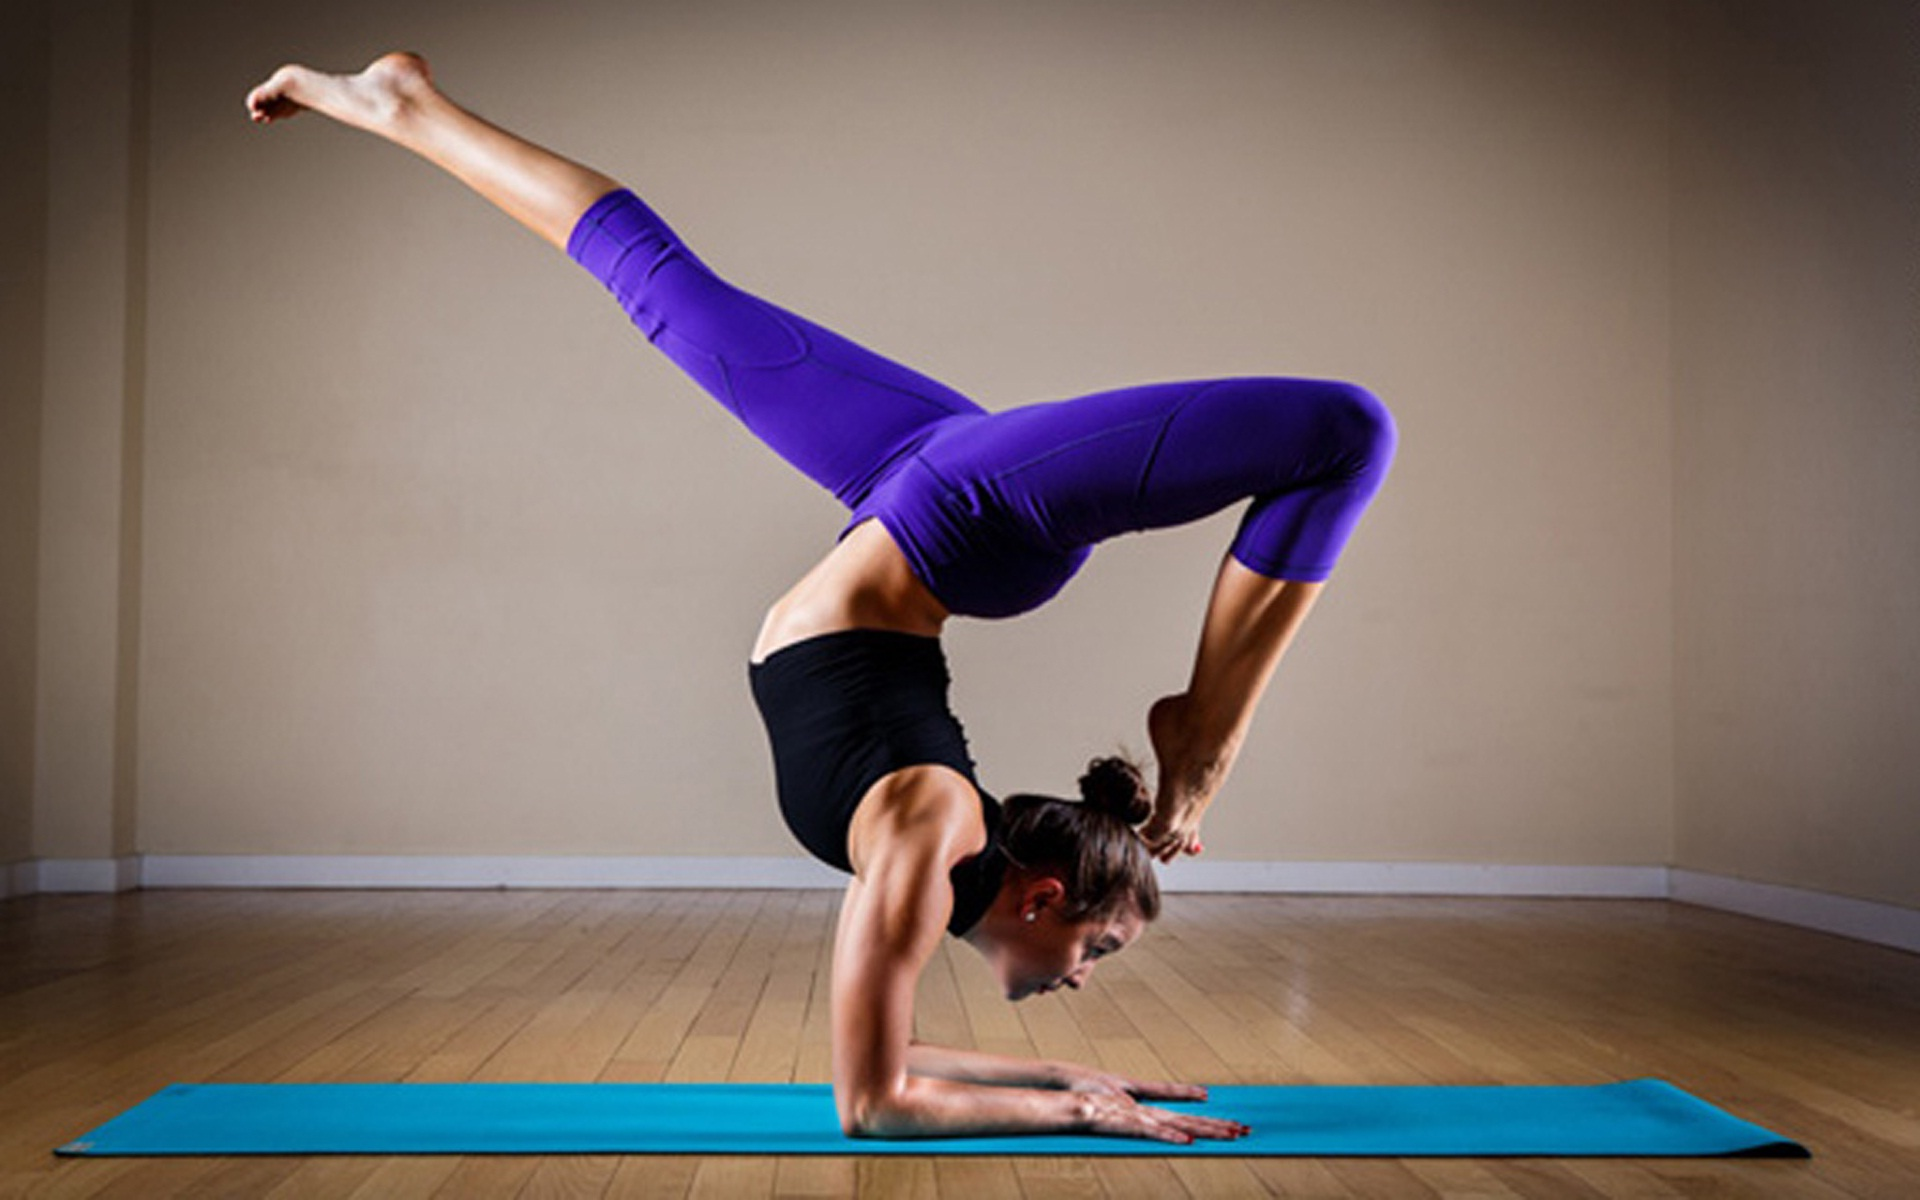 Yoga Wallpaper Images Yoga For Flexibility 320000 Hd Wallpaper Backgrounds Download